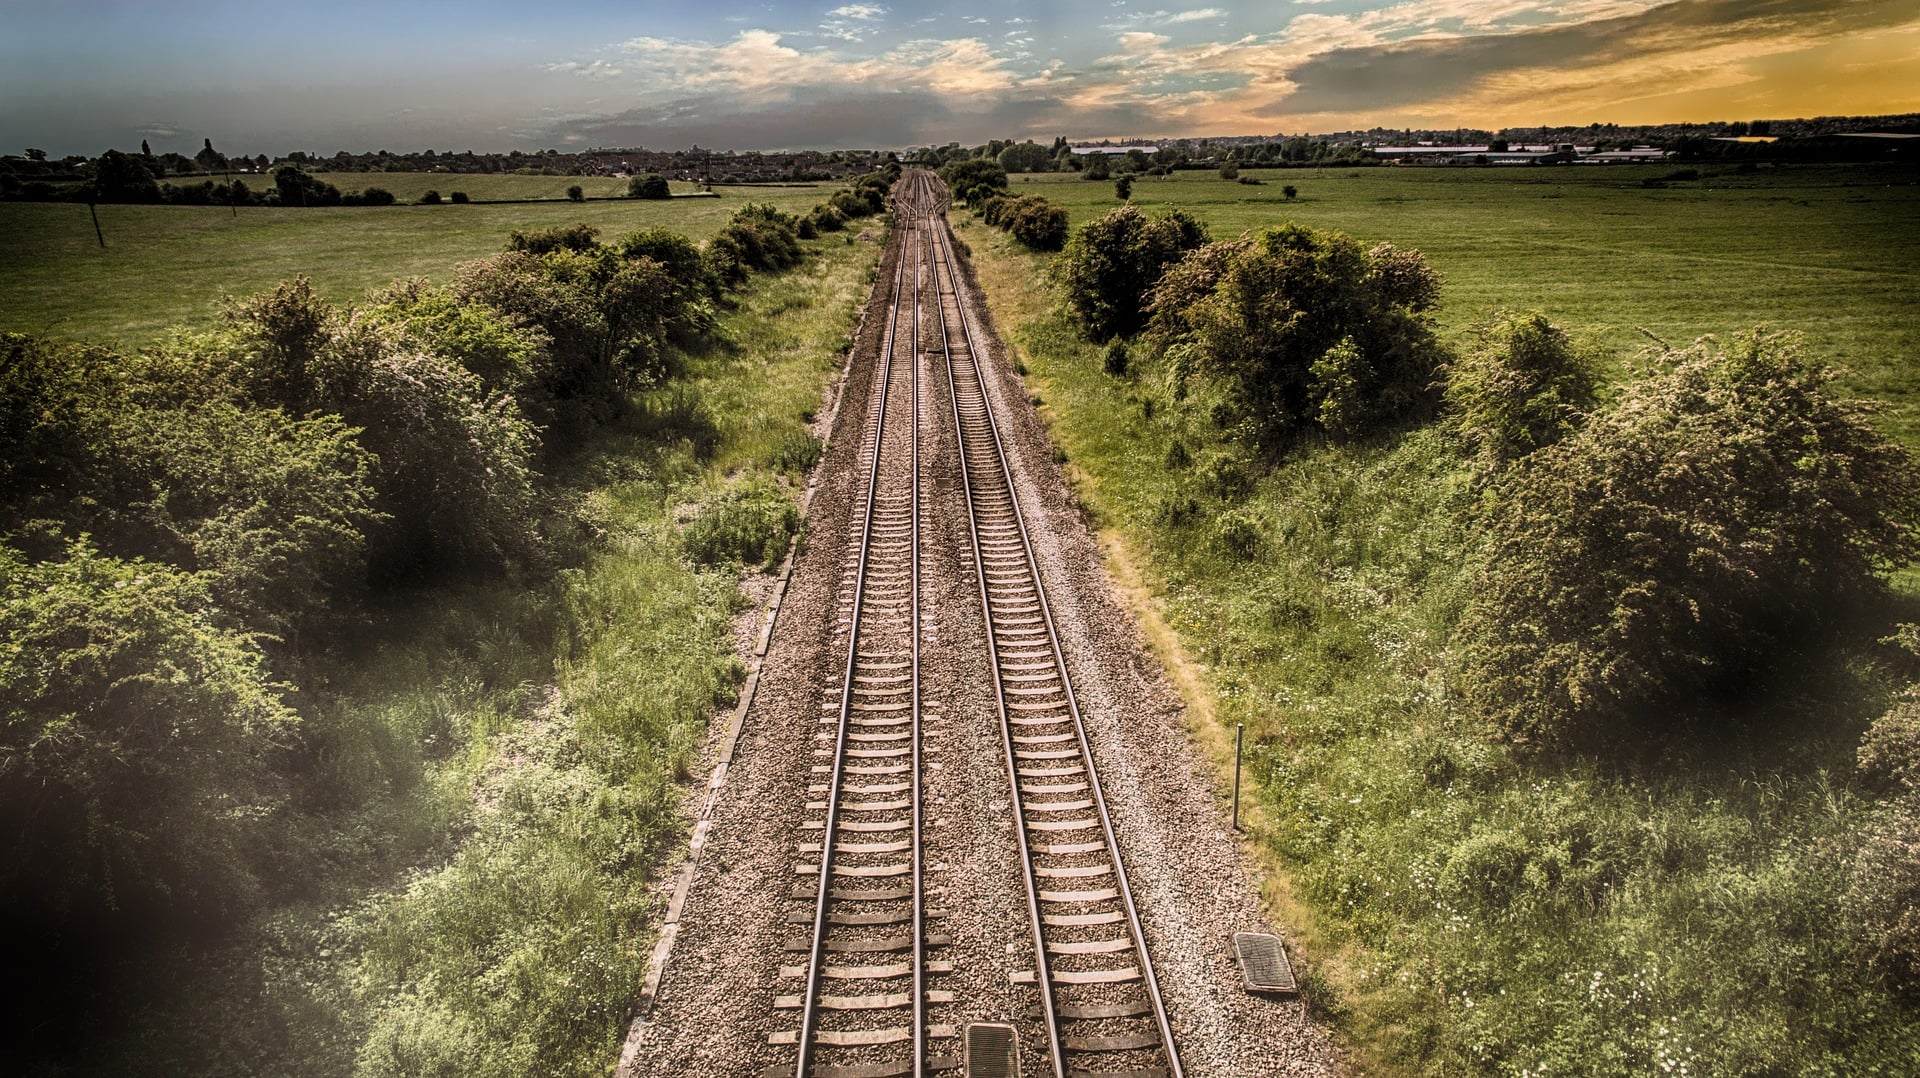 HS2 – Politicians Cannot Guarantee Work for Local Workers in Fair Bidding Scenario